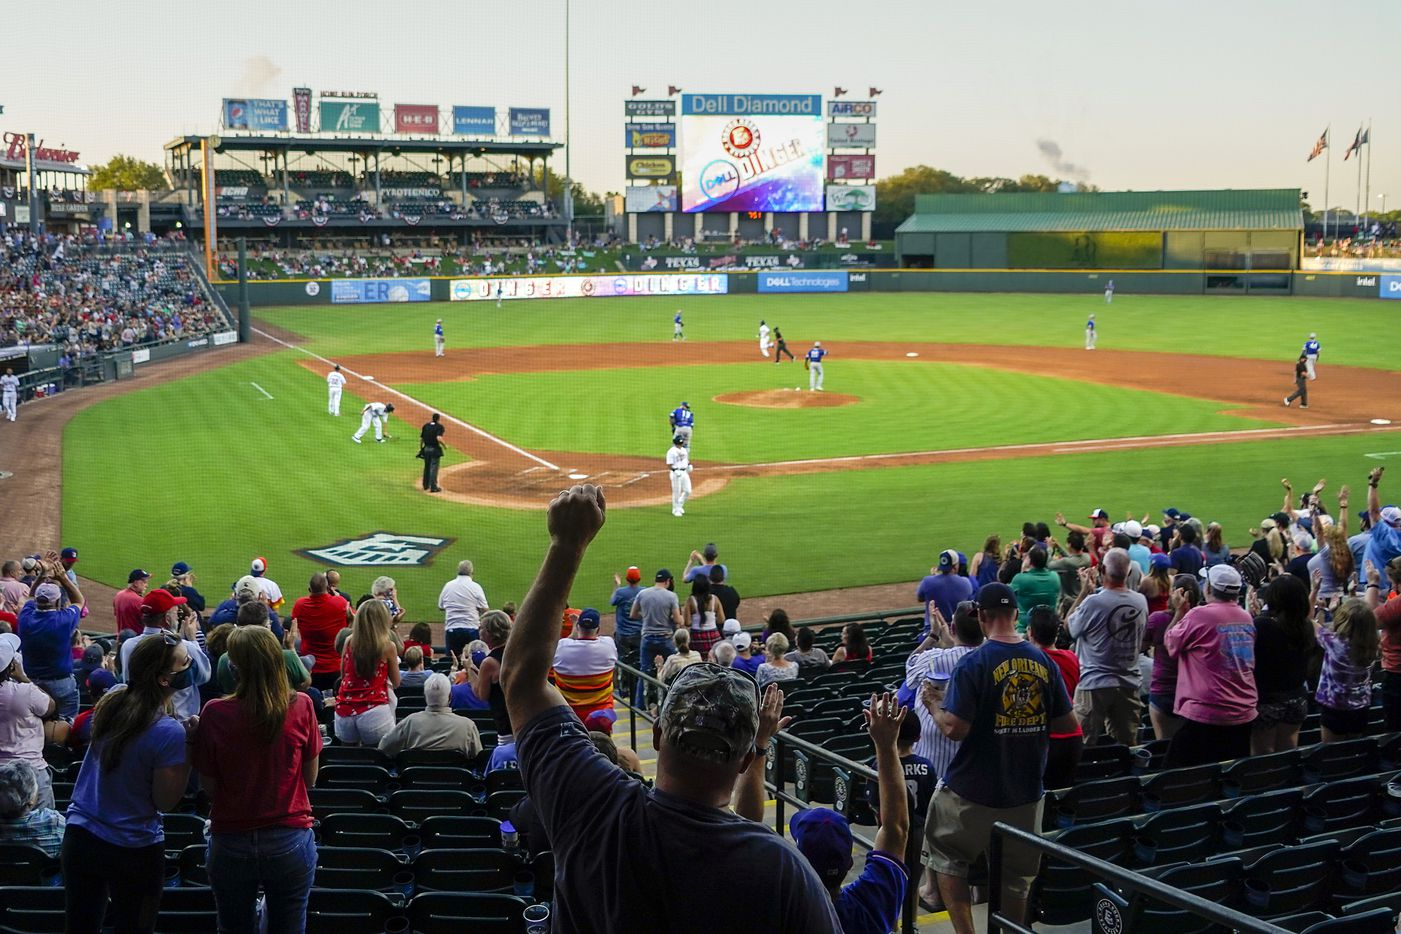 Fans cheer a 2-run home run by Round Rock Express infielder Charles Leblanc during the second inning against the Oklahoma City Dodgers at Dell Diamond on Thursday, May 6, 2021, in Round Rock, Texas.